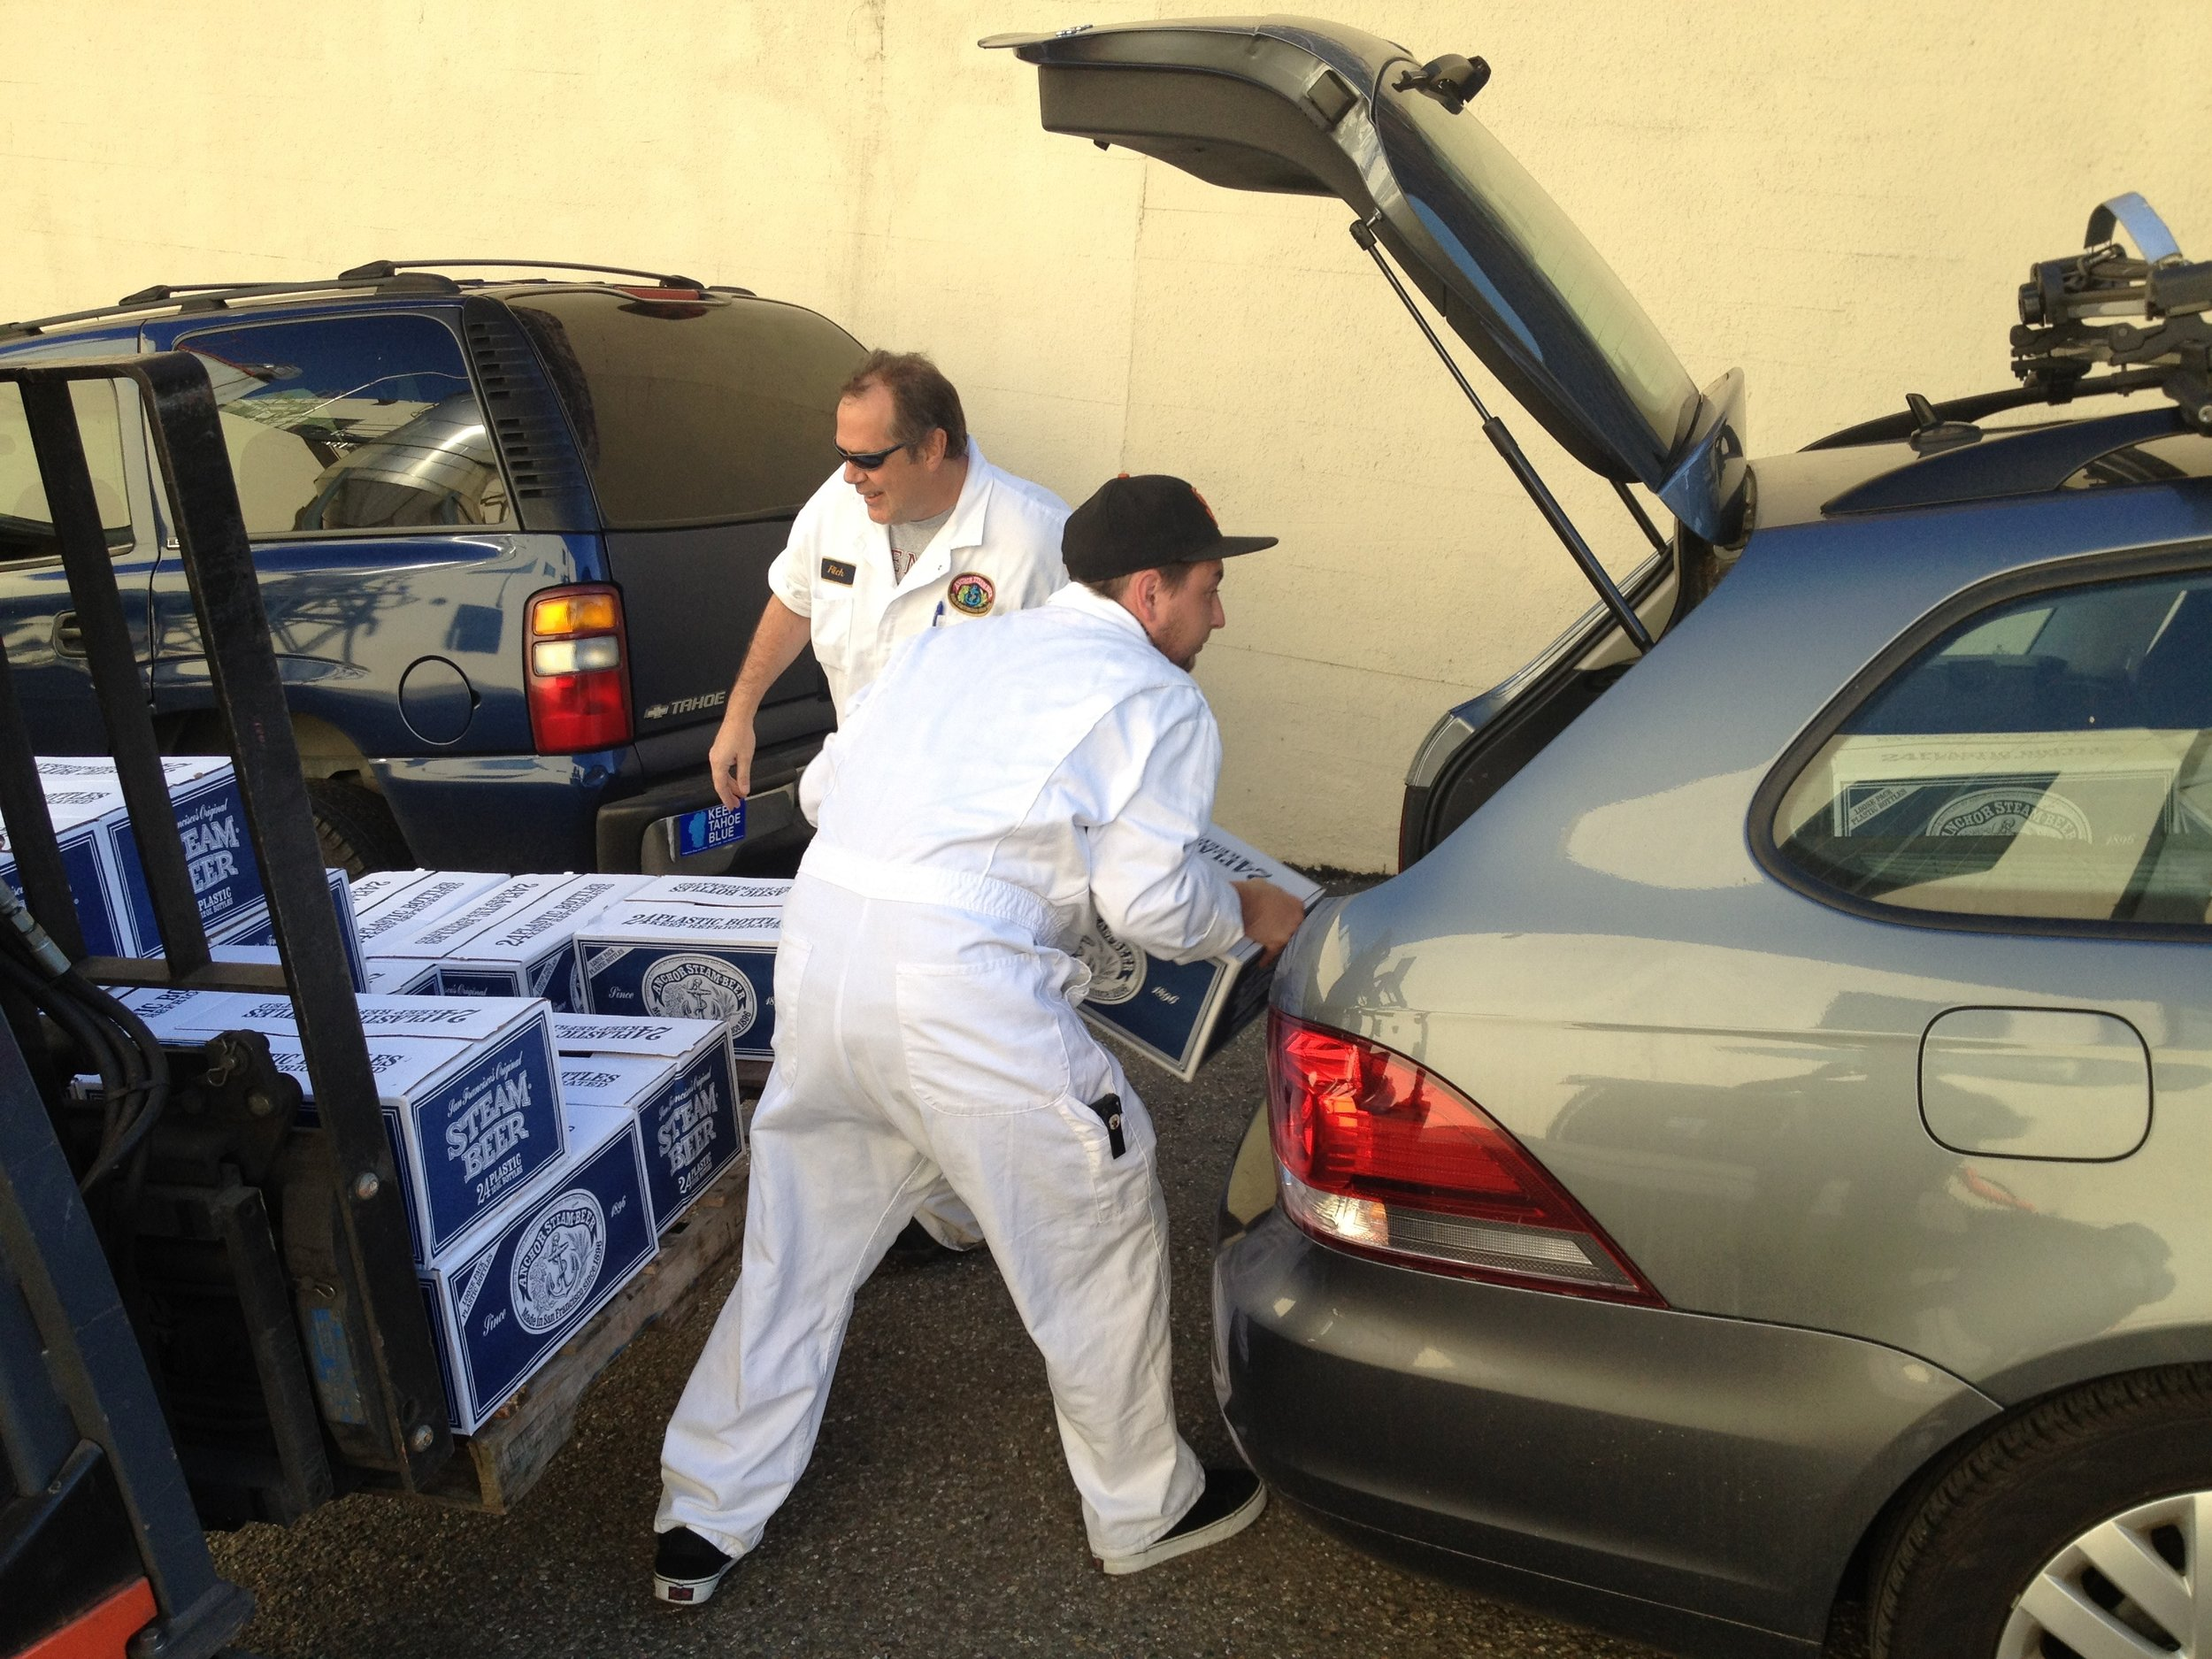 All hands - What would the comp be without a personal delivery of 24 cases of Anchor Steam?